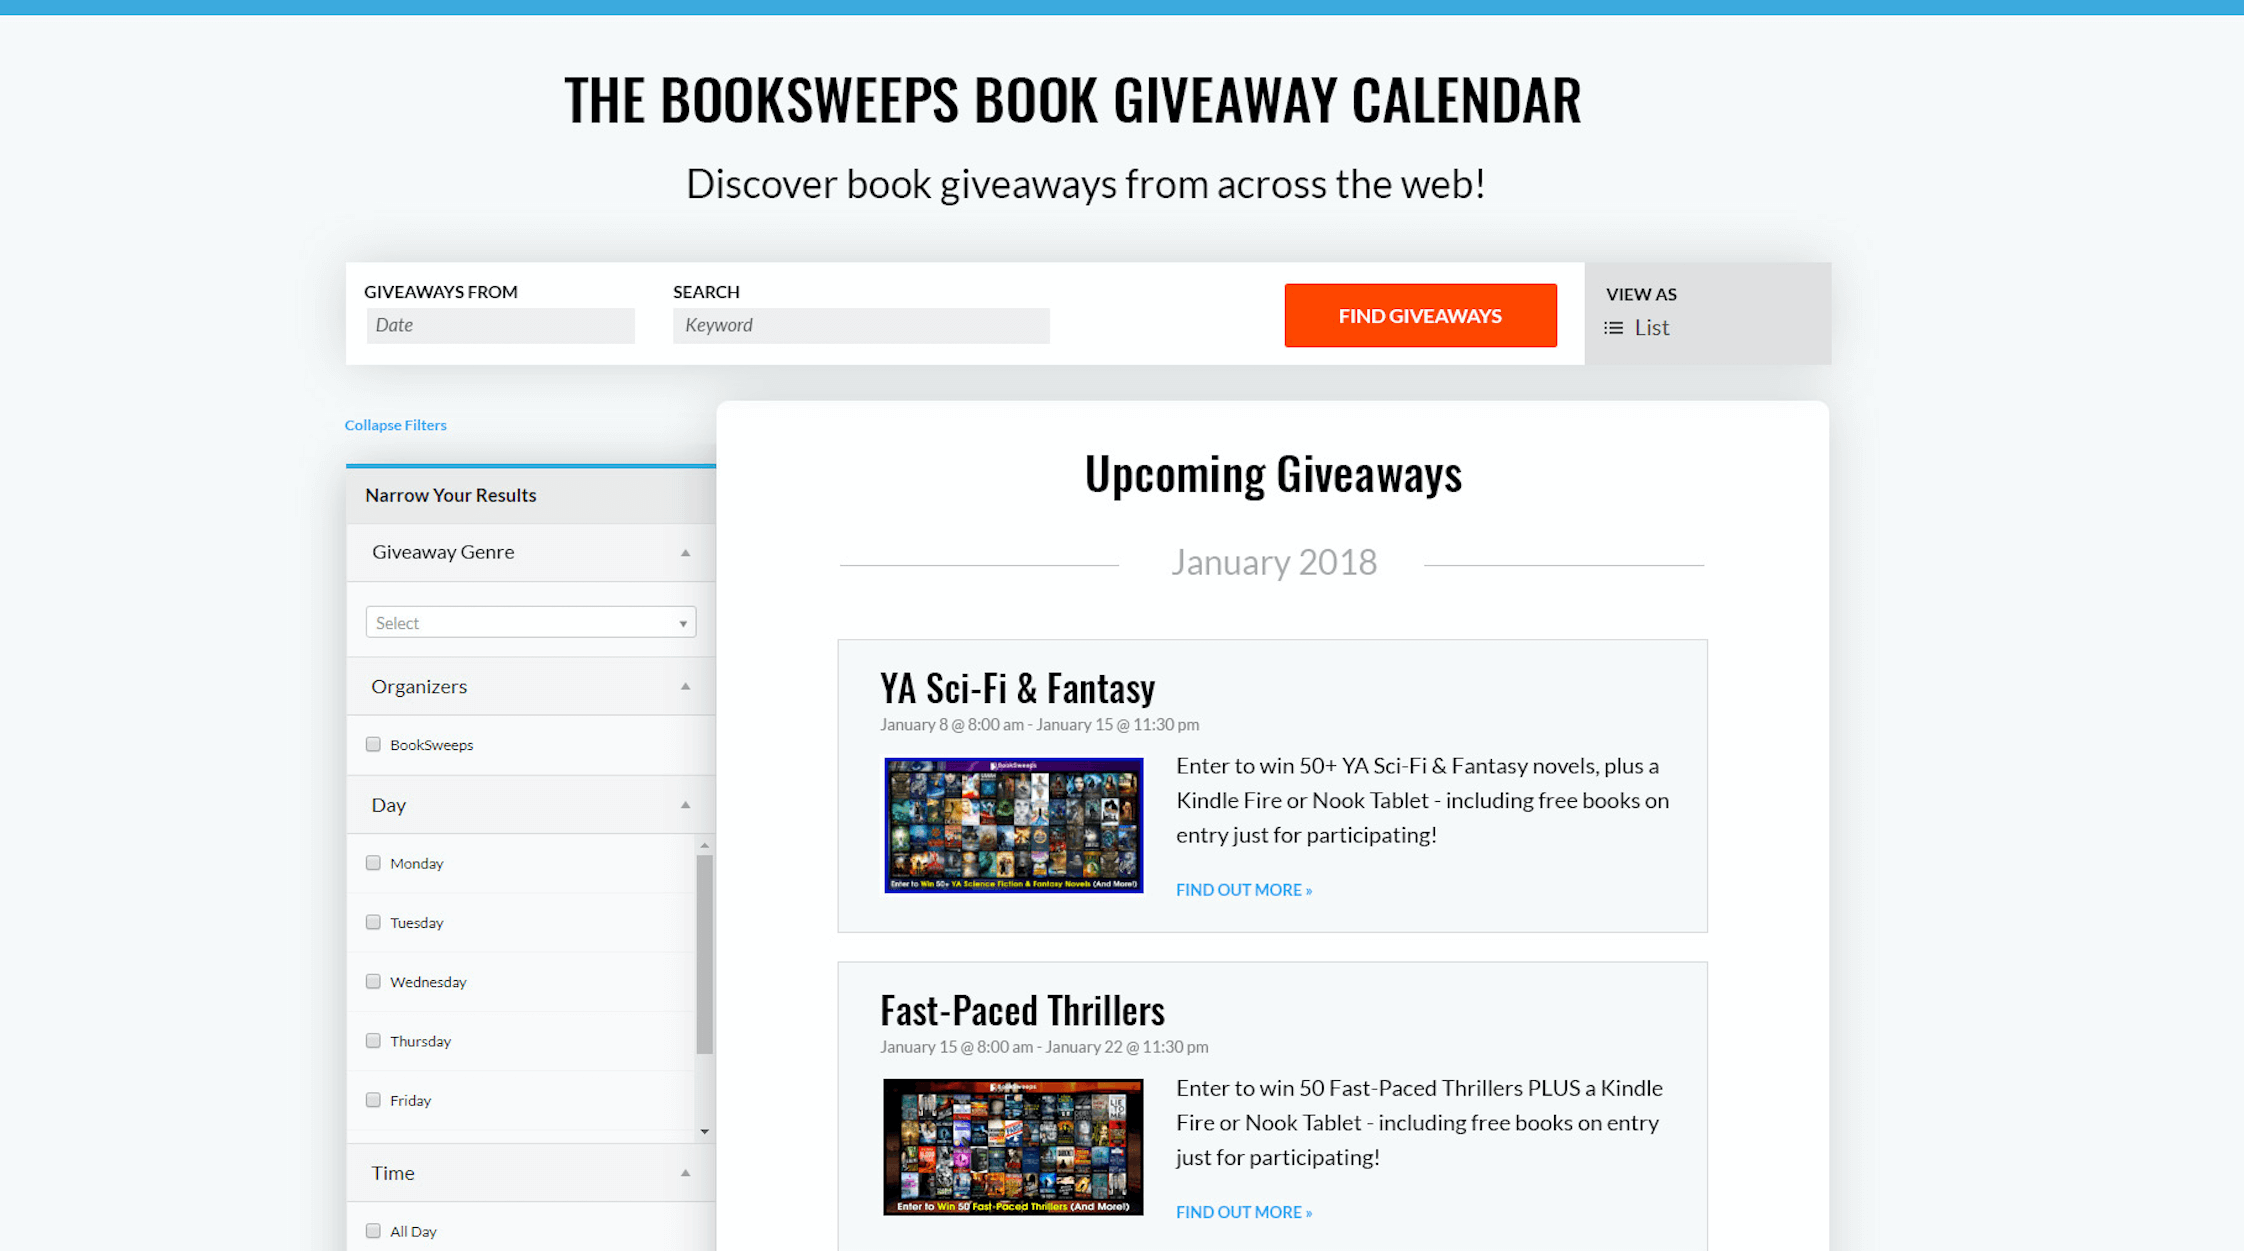 The BookSweeps Book Giveaway Calendar